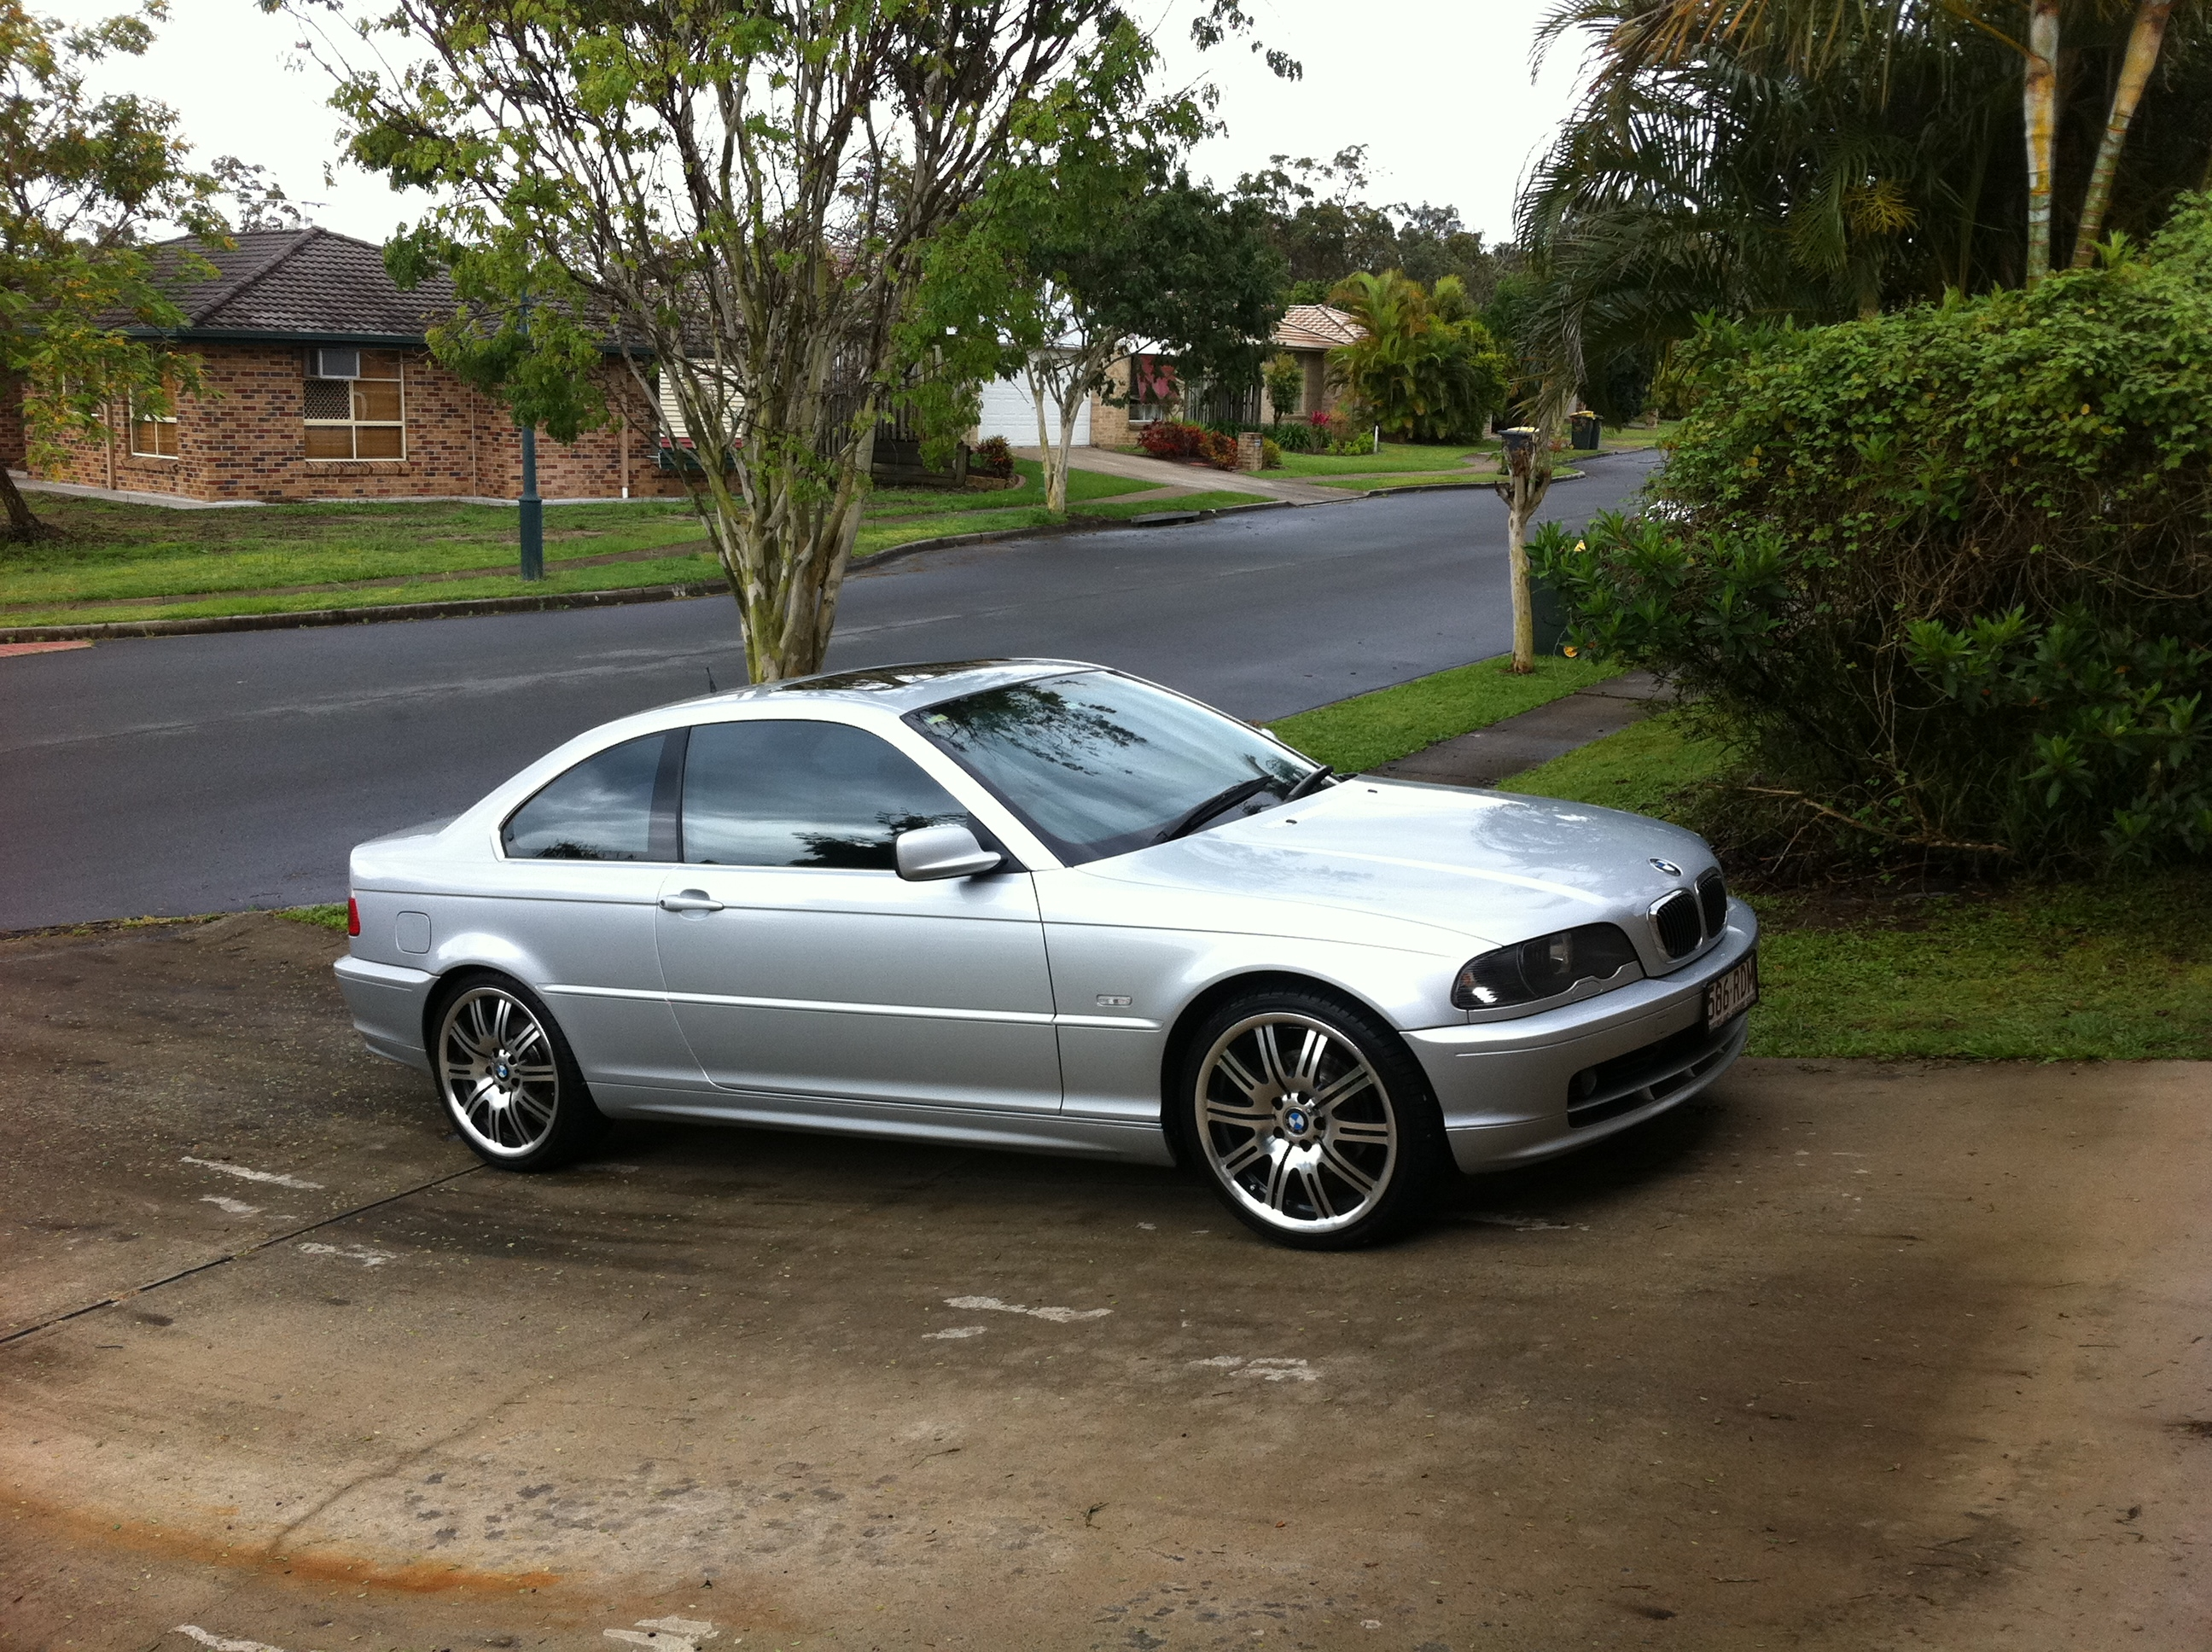 BMW 3 series 330xd 2000 photo - 11